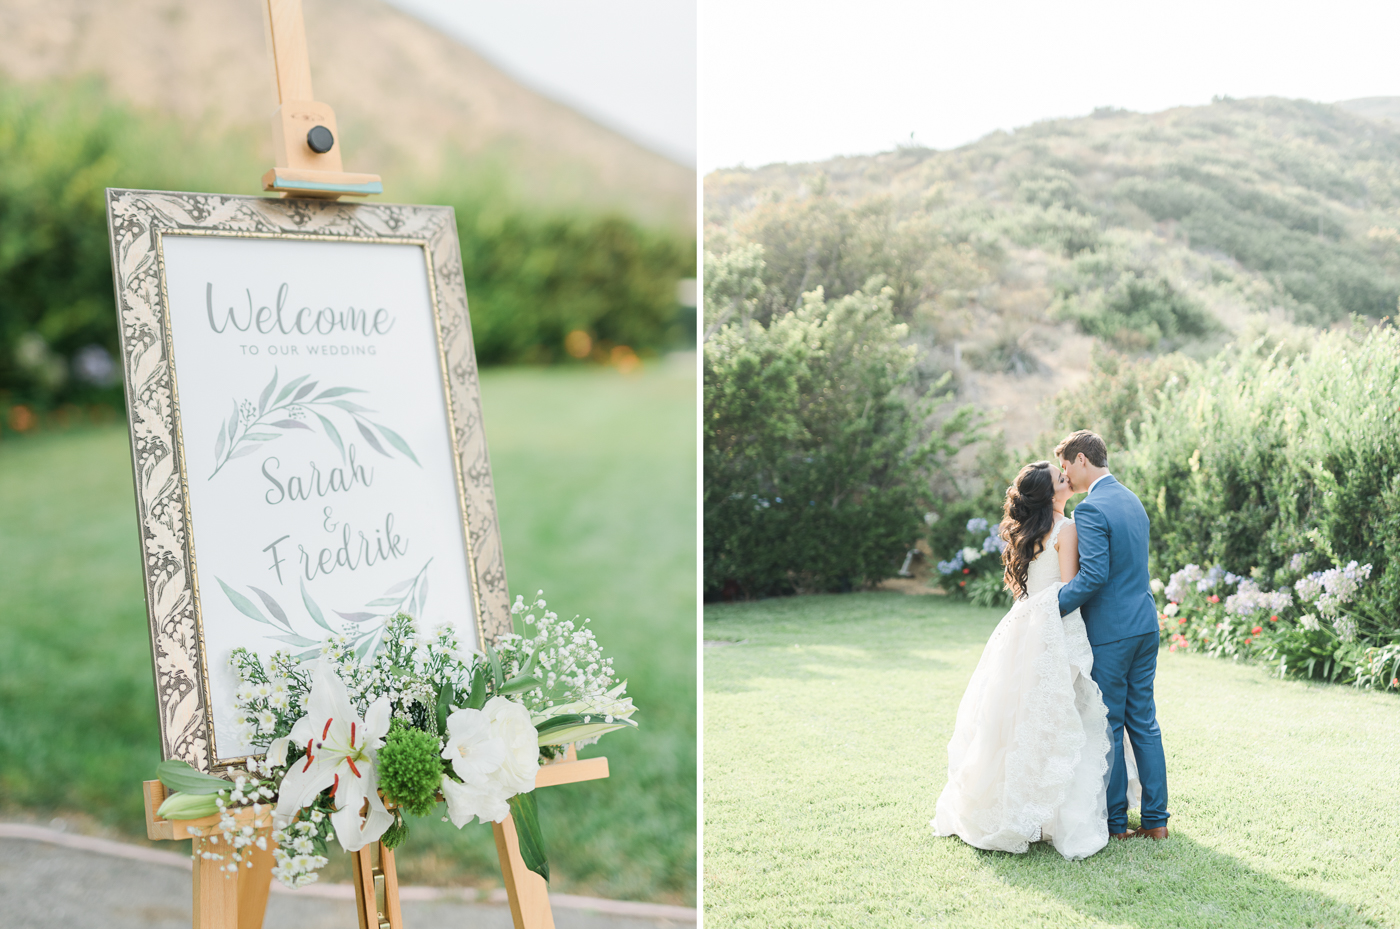 AKP_S&F_Malibu_Wedding_Fine_Art_Photography_Los_Angeles-11_welcome_sign.jpg